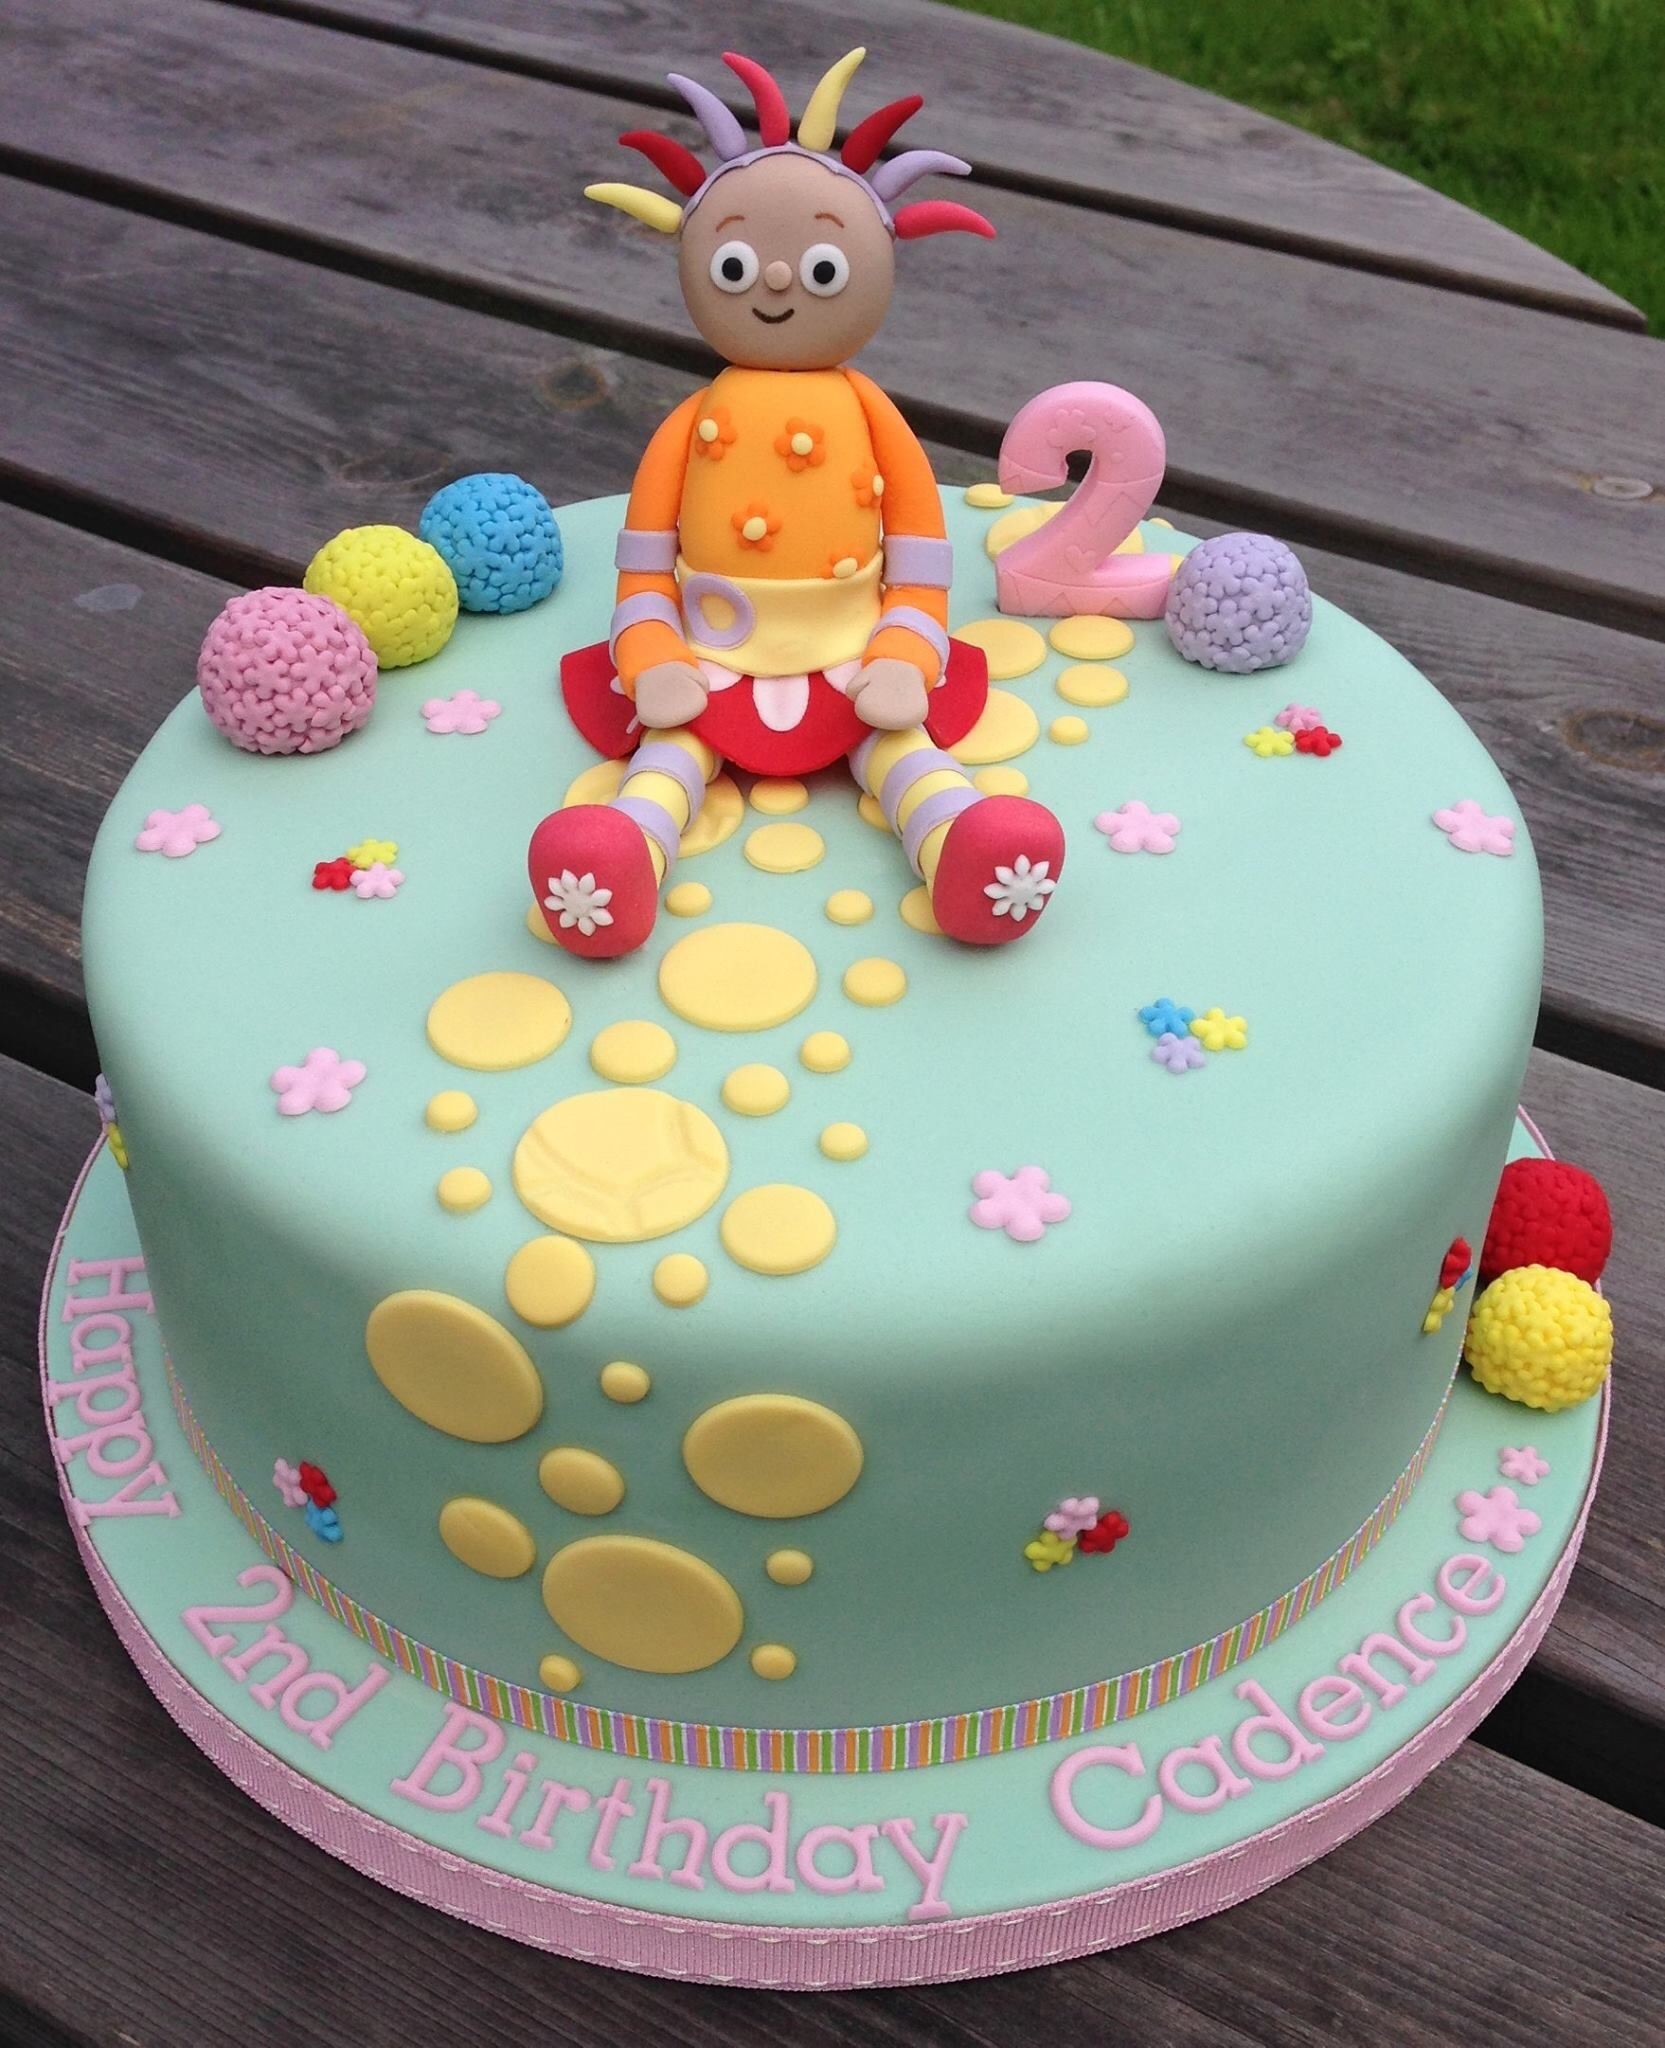 Phenomenal In The Night Garden Cake With Upsy Daisy Model Cakes By The Cor Funny Birthday Cards Online Alyptdamsfinfo